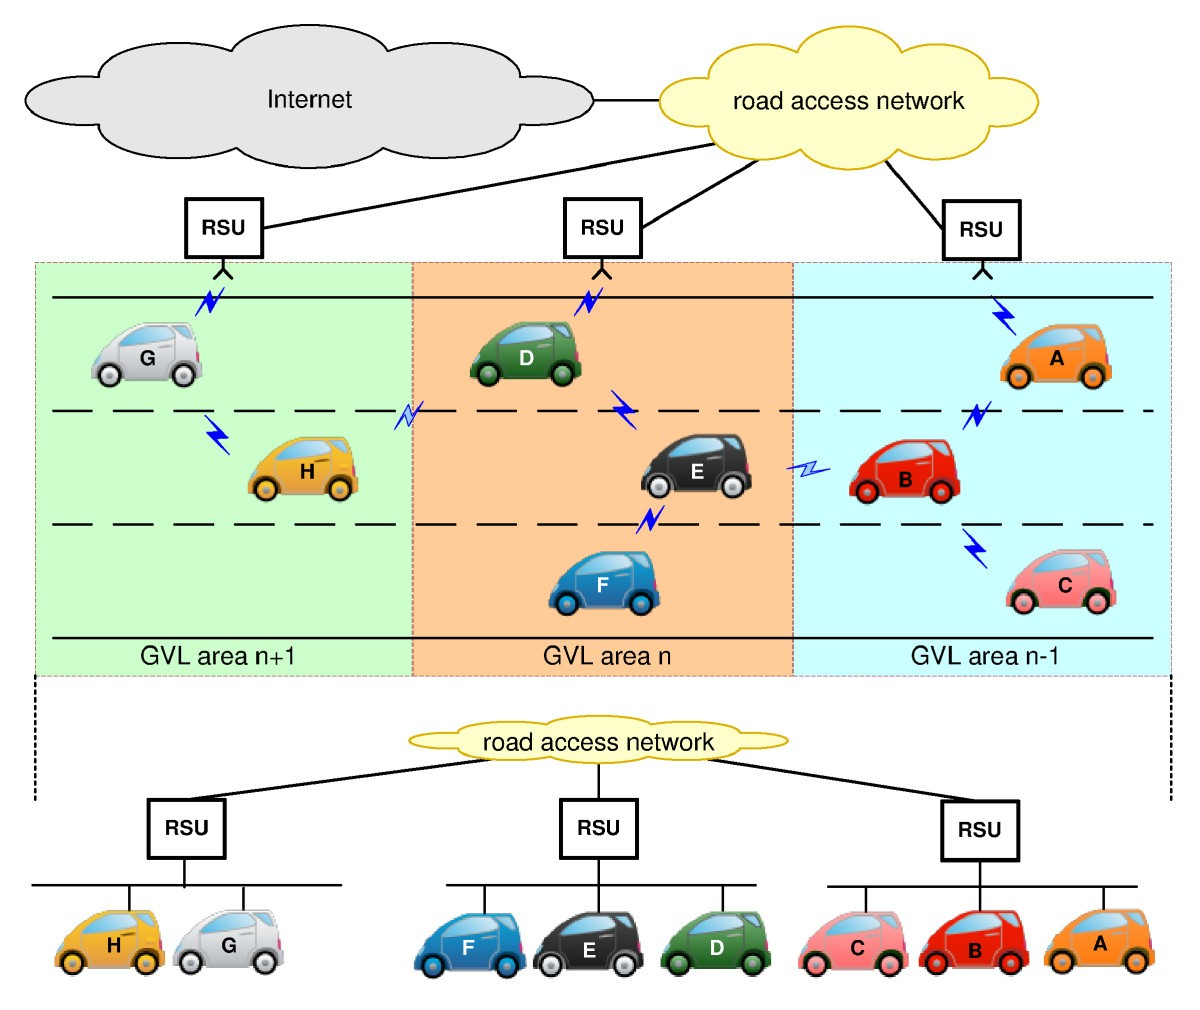 Ipv6 Address Autoconfiguration In Geonetworking Enabled Vanets Network Diagram For Internetbased Servers Scenario 4 With Internet Figure 3